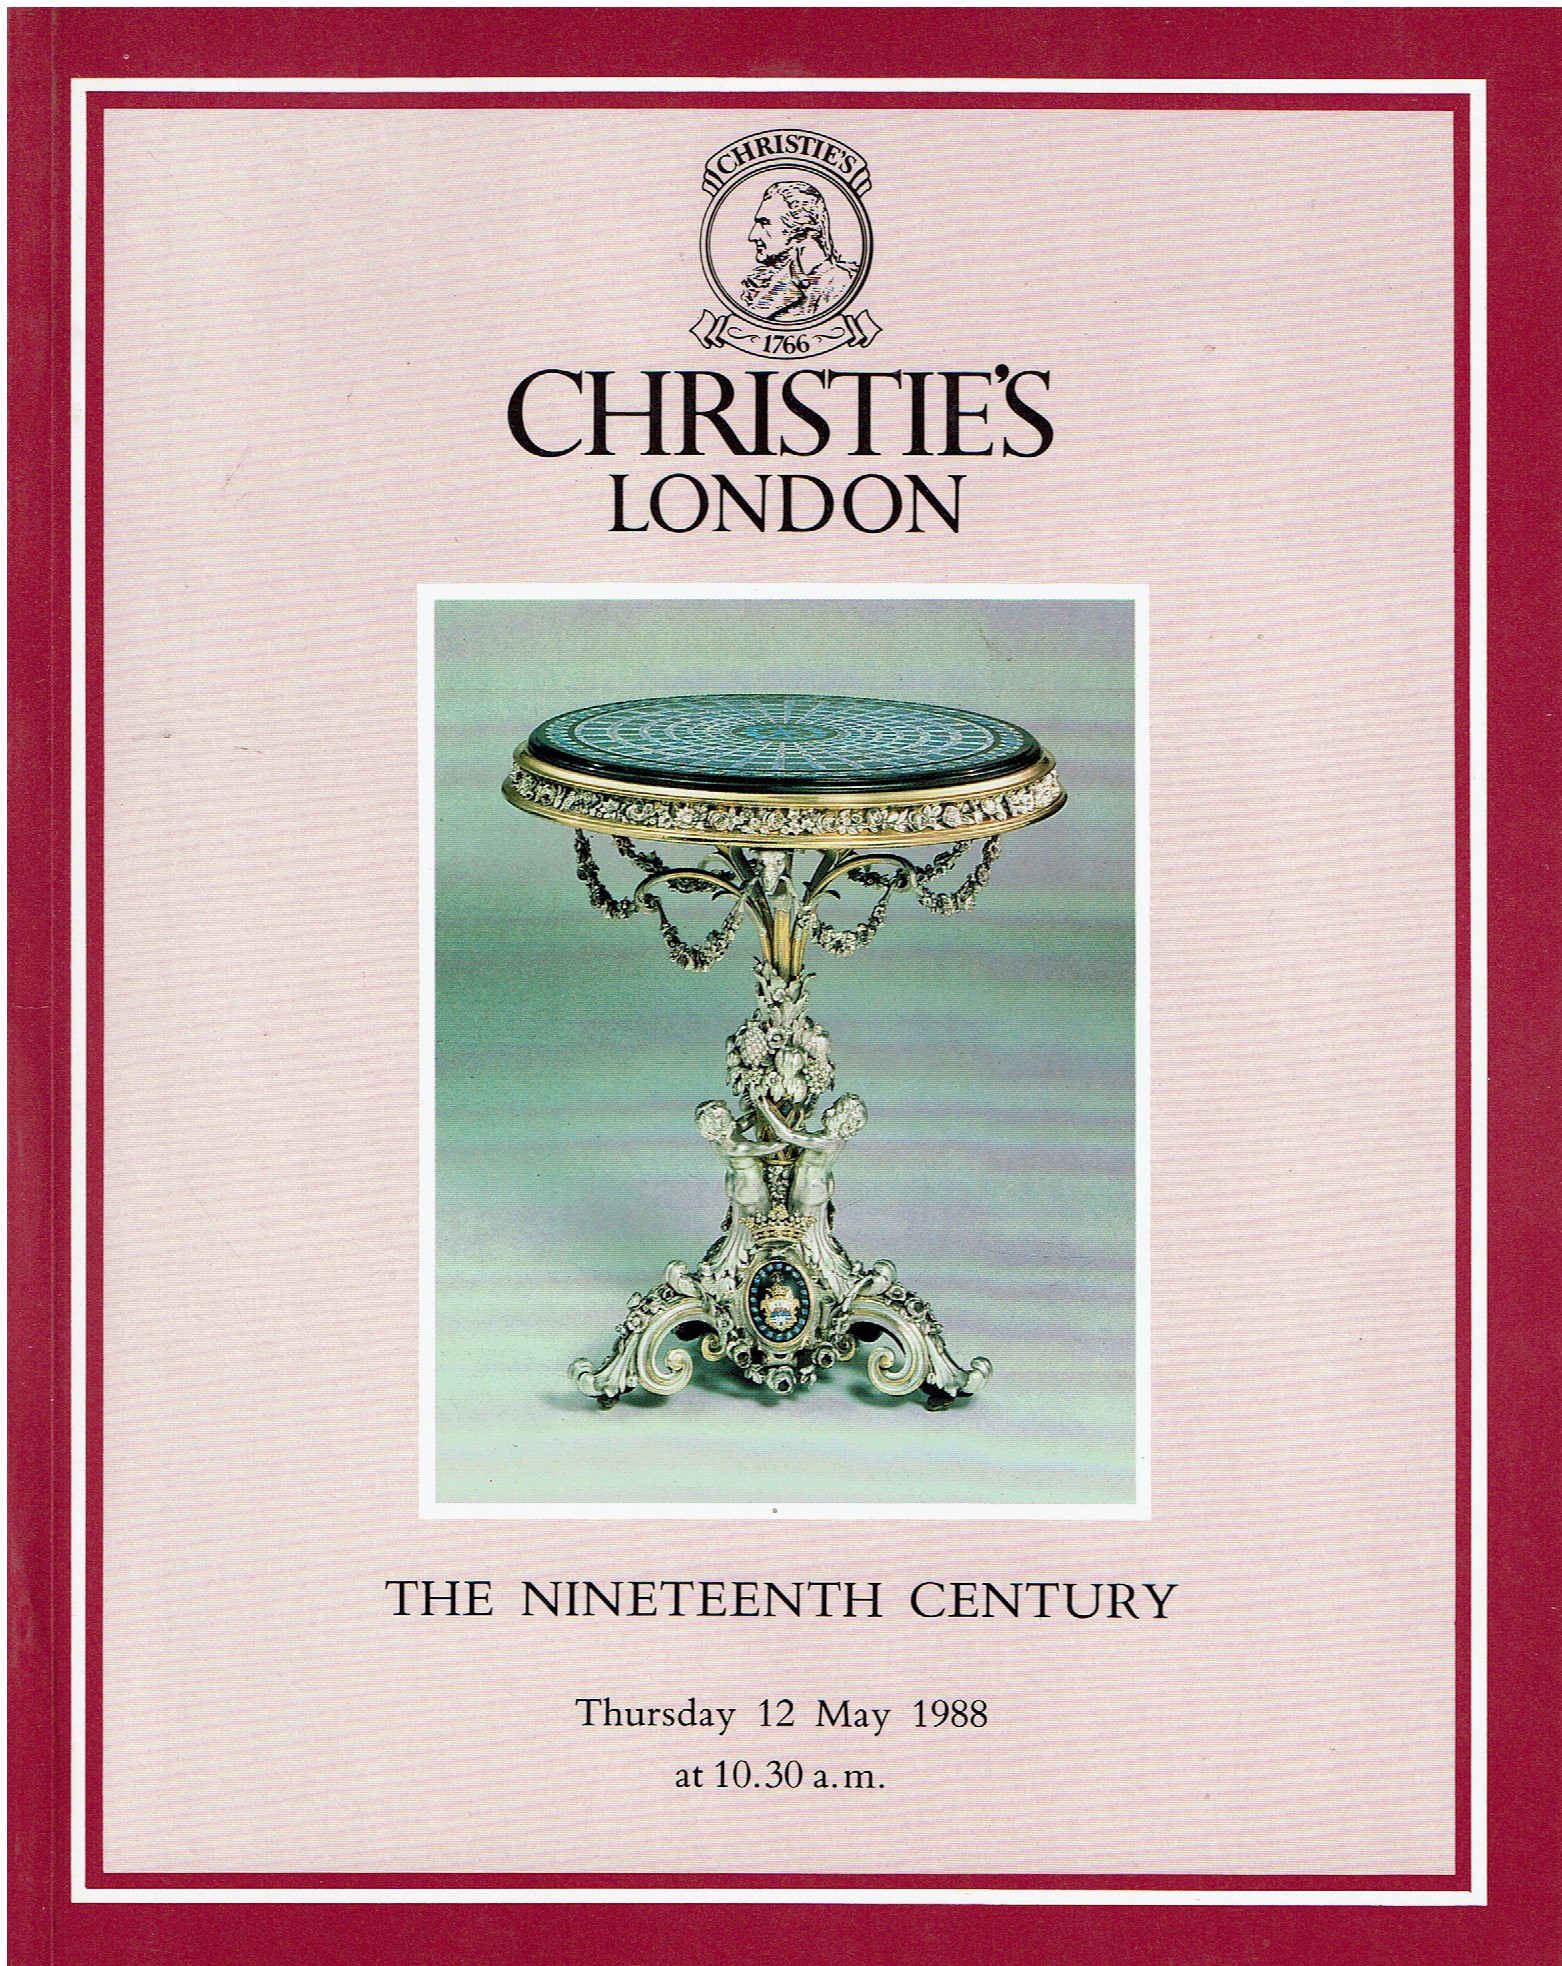 Christies 19th Century Rugs scupture porcelain work of art and furniture